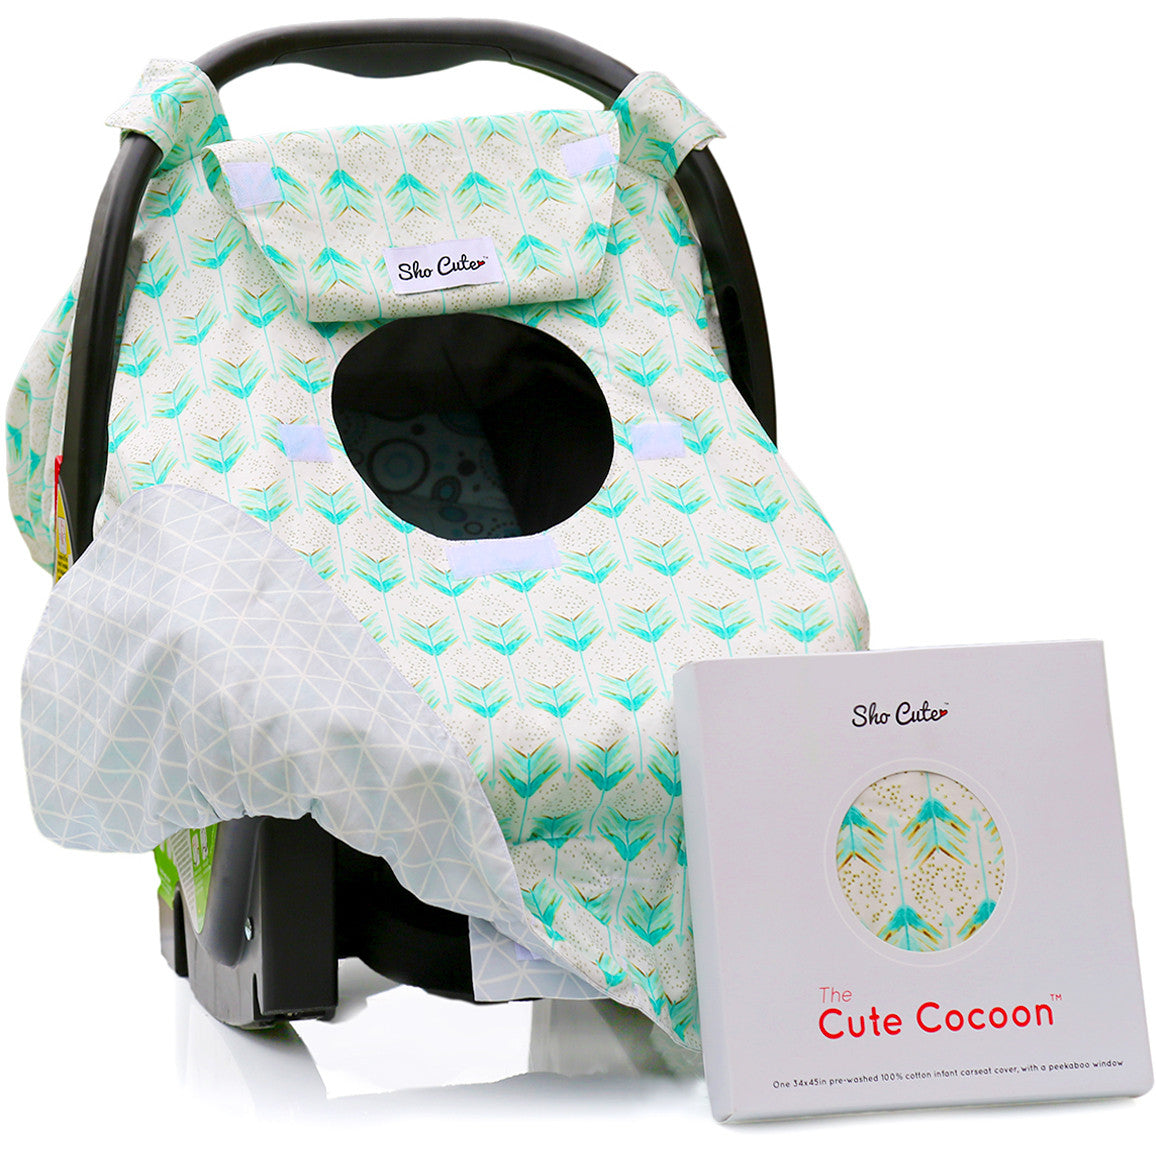 BABY CARSEAT CANOPY COVER [REVERSIBLE] - Rose Lux - Mint Arrows  sc 1 st  Sho Cute & Reversible] Infant Car Seat Cover - Mint Arrows u2013 Sho Cute